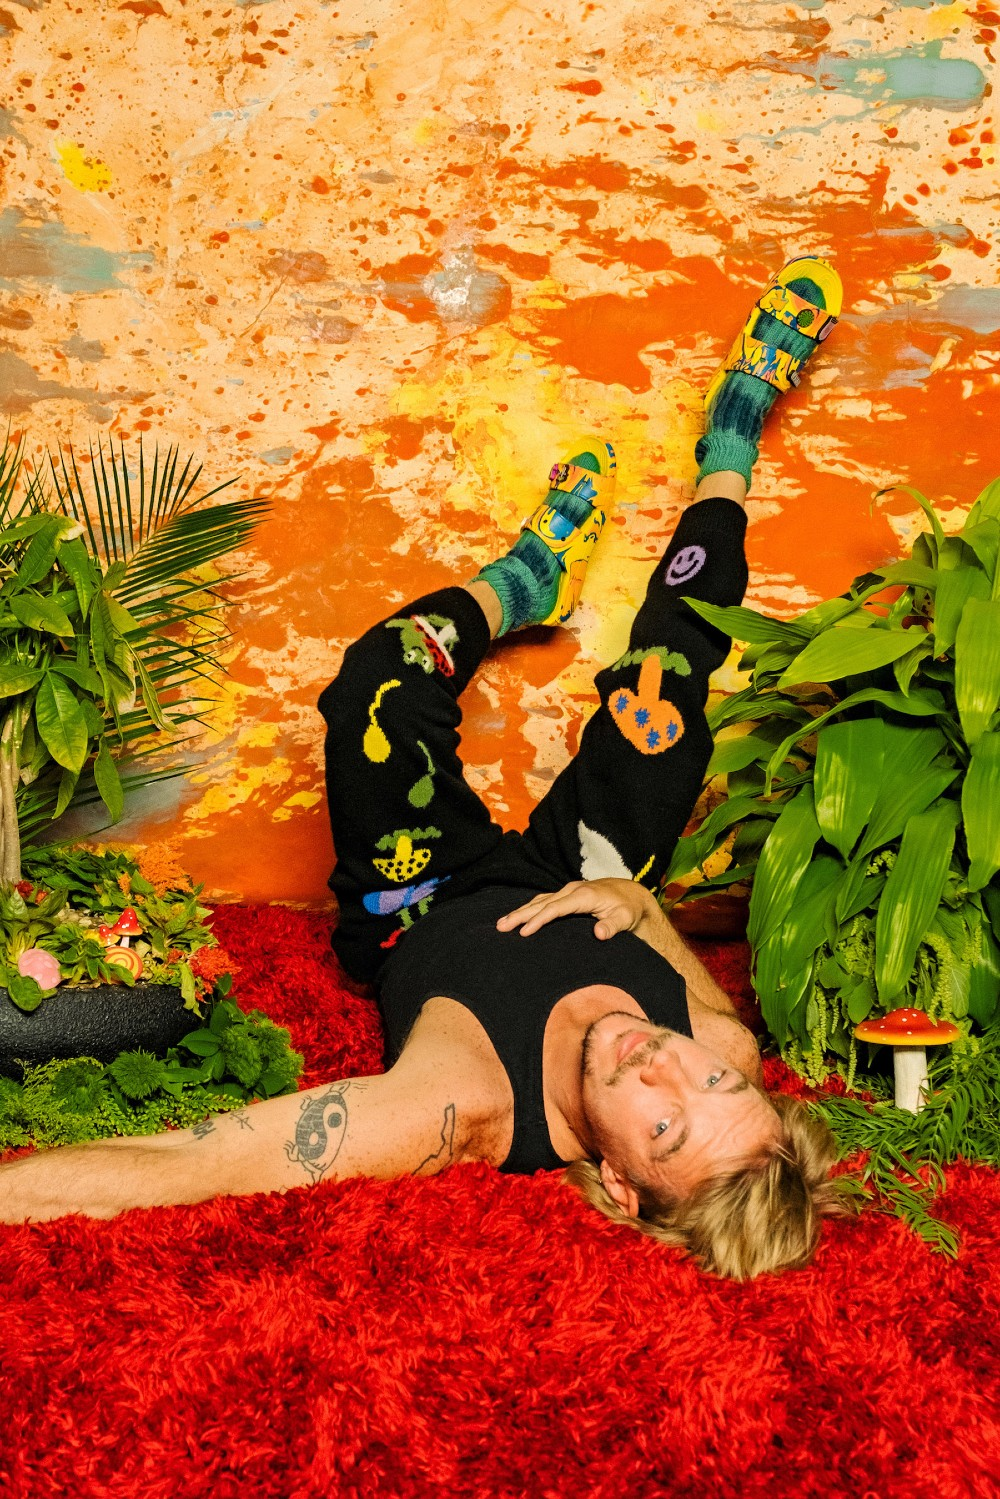 Diplo will debut his first line of clogs and sandals with Crocs on Tuesday.